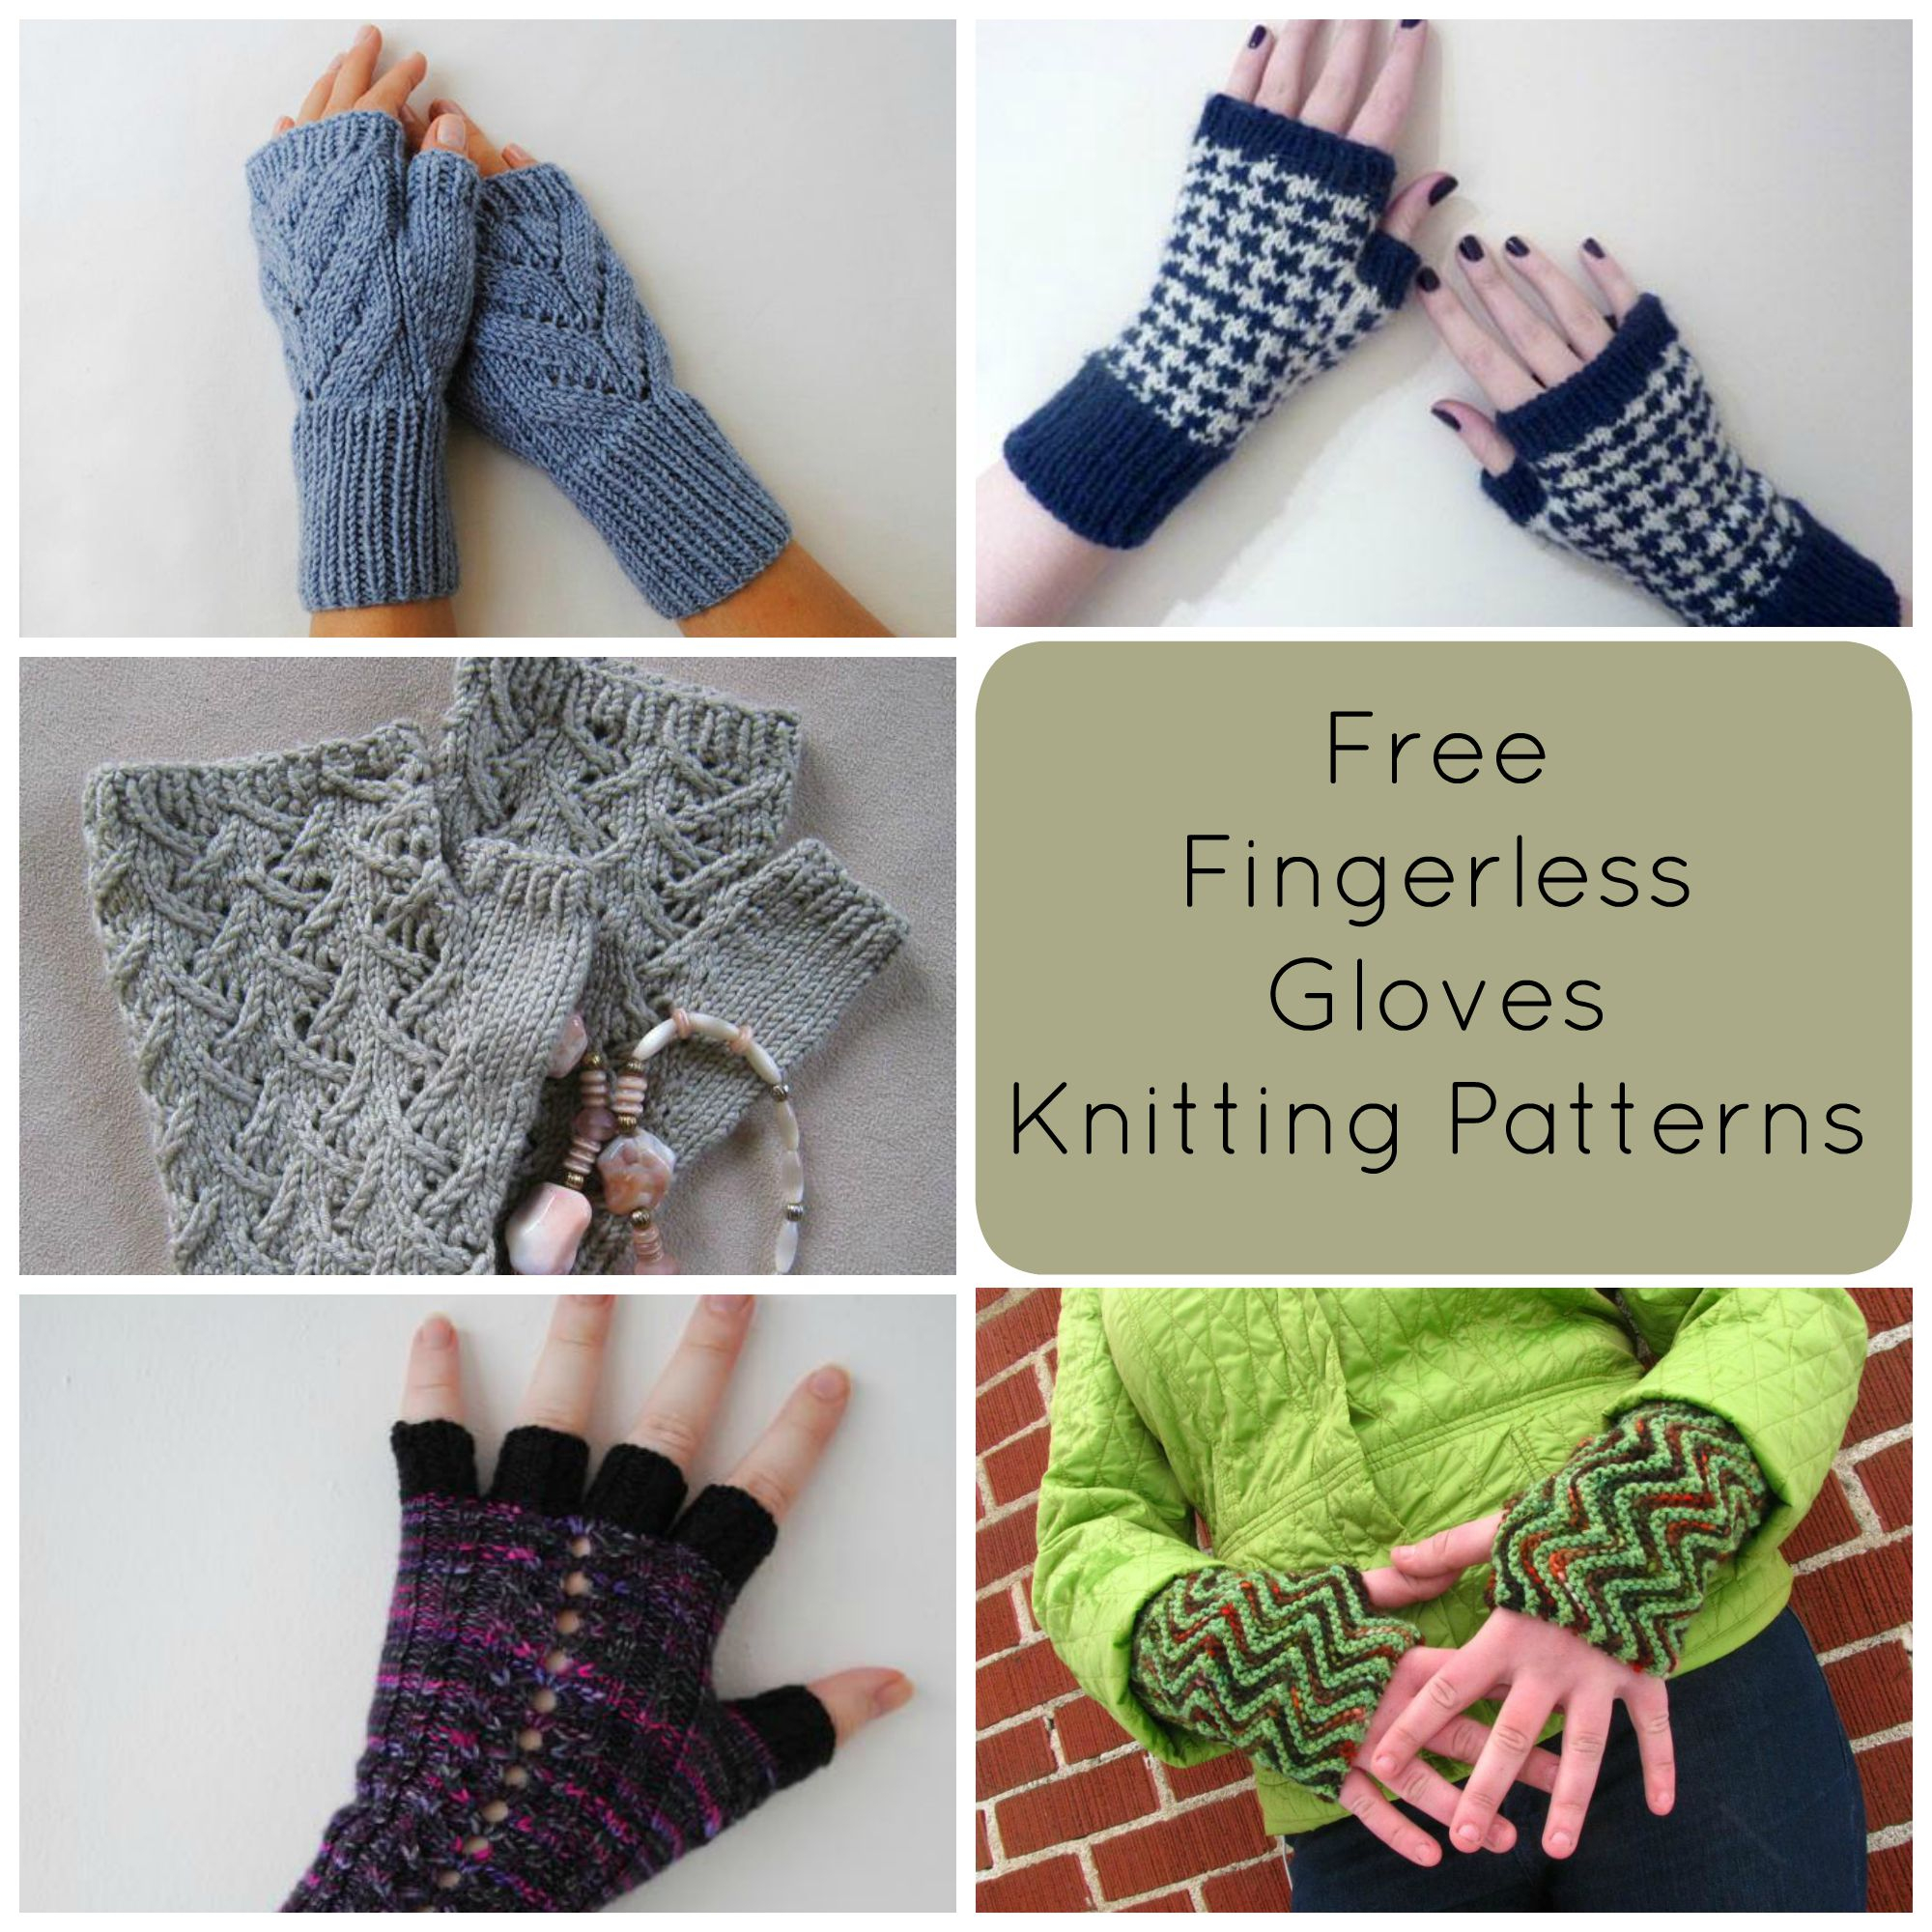 Free Knitted Glove Patterns Knitting For Beginners Craft Blog Crochet Patterns